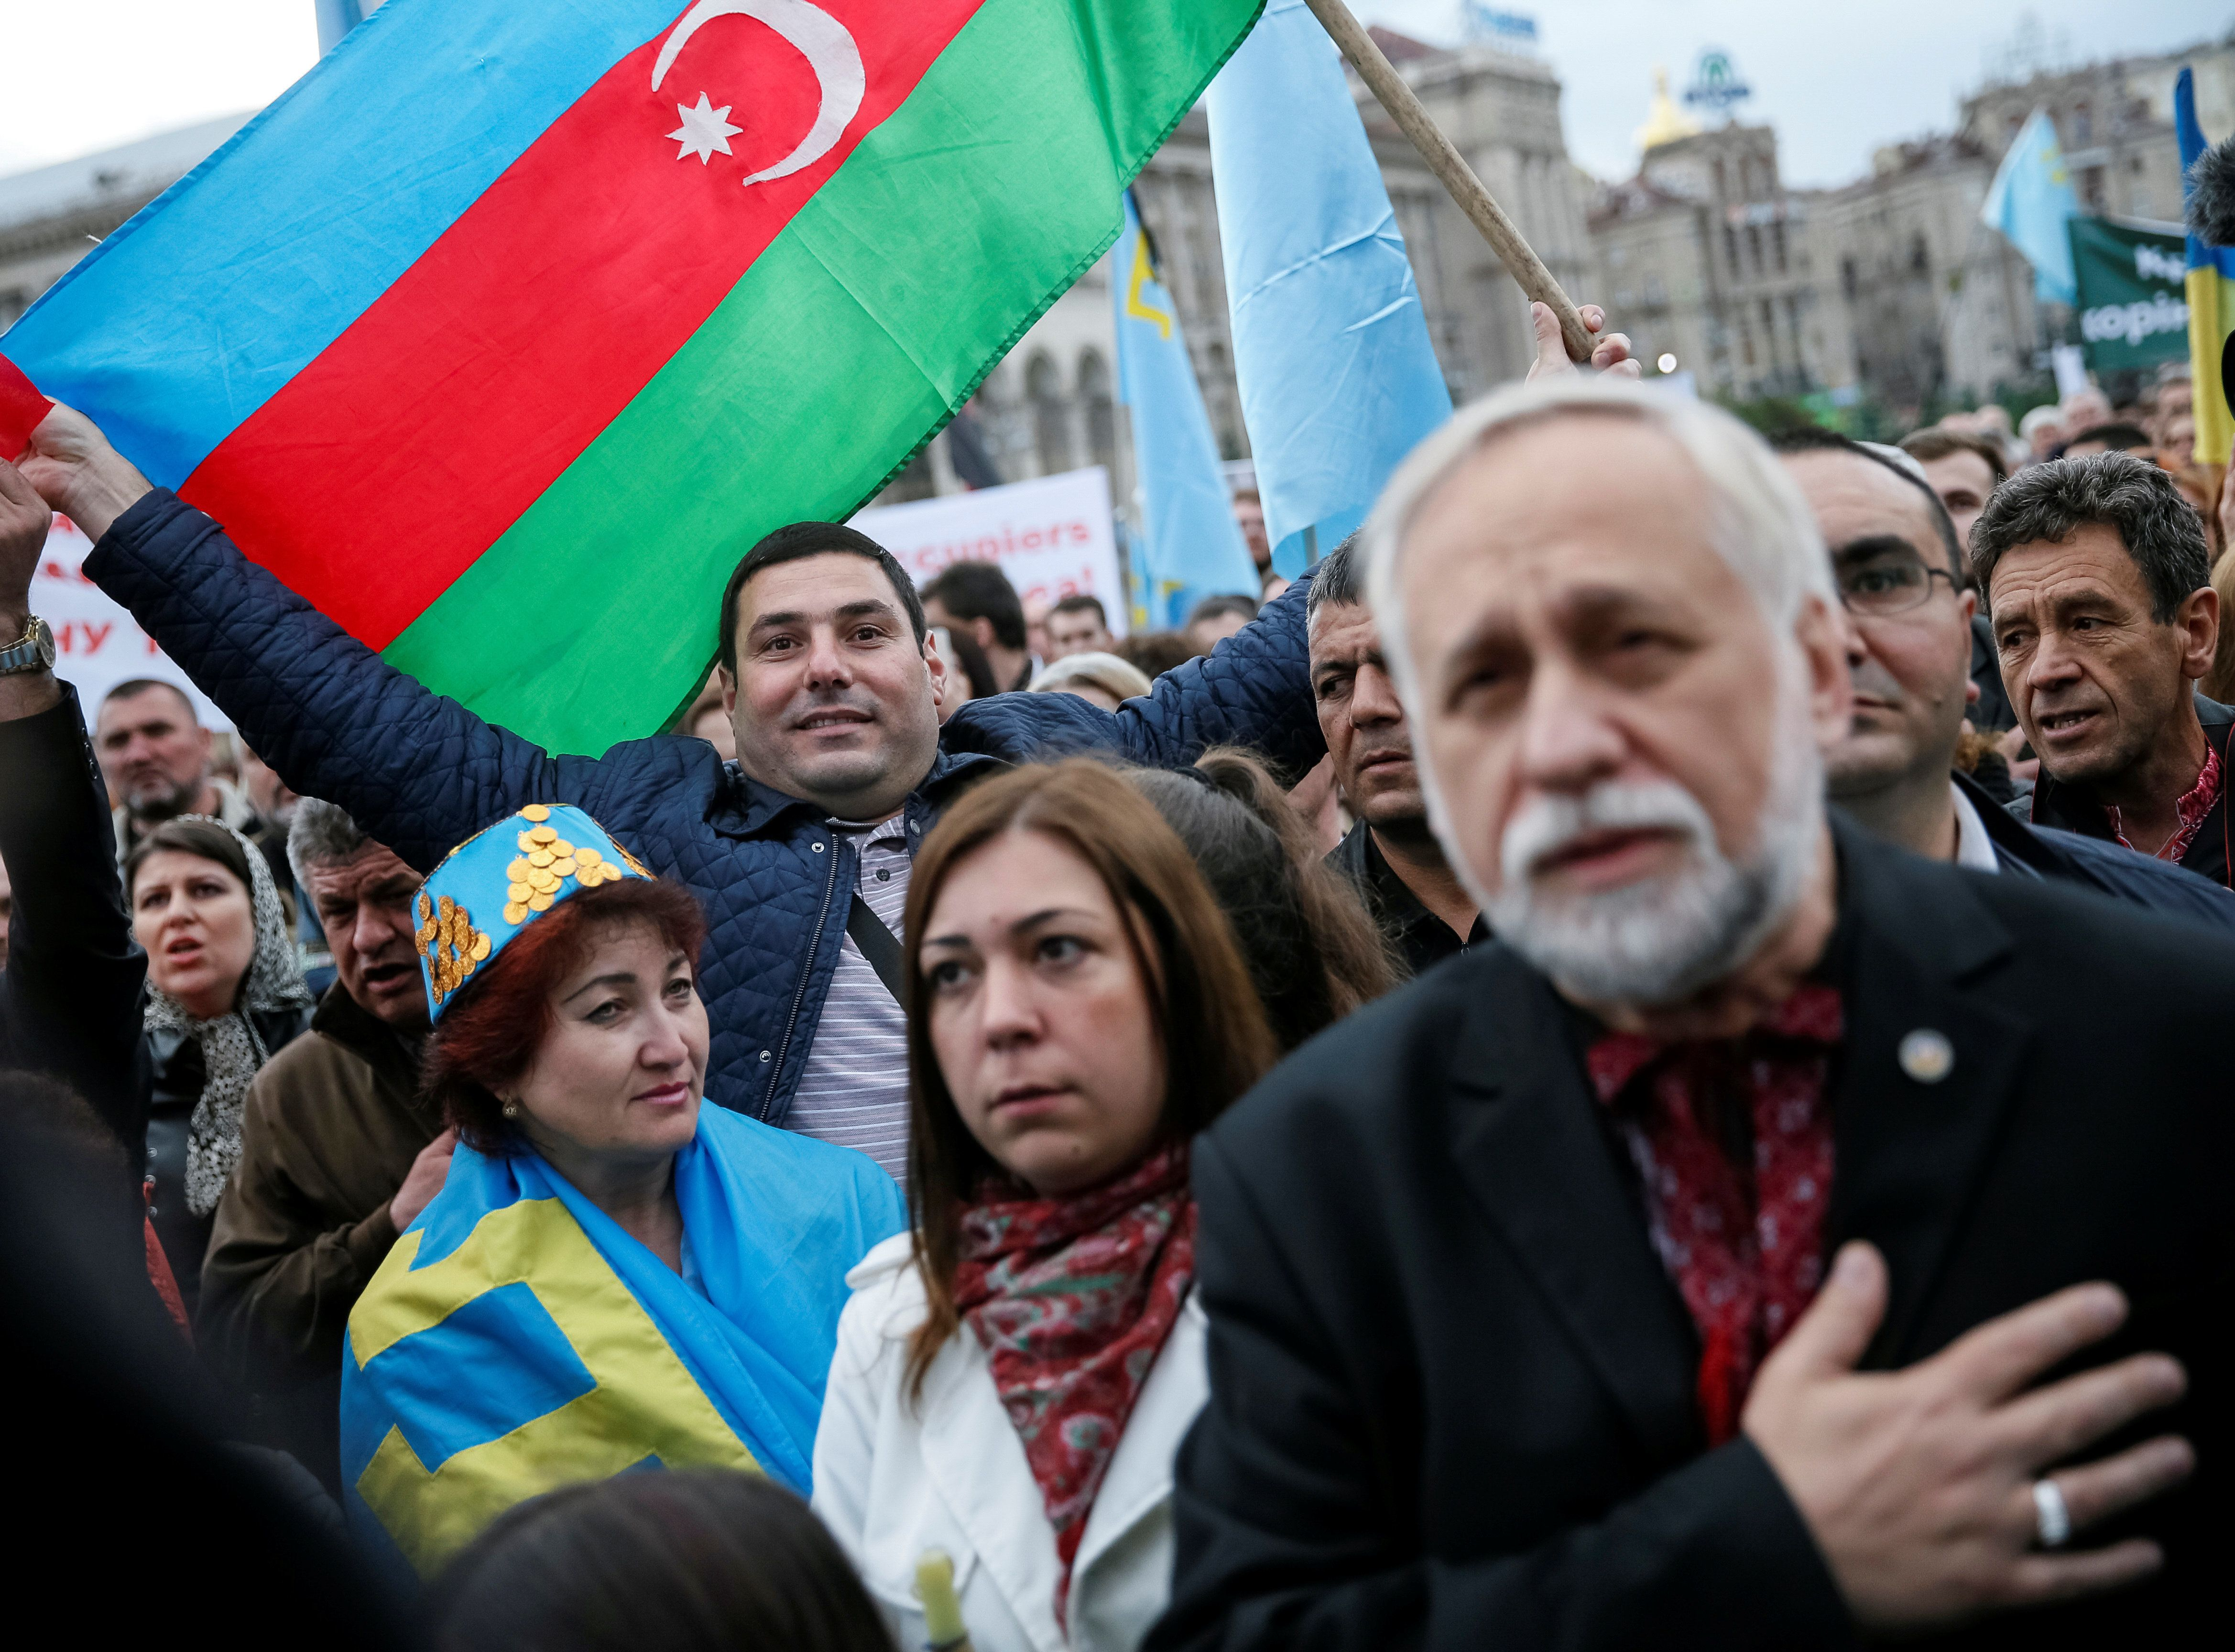 People gather to commemorate the anniversary of the deportation of Crimean Tatars from Crimea to Central Asia in 1944, in Ind